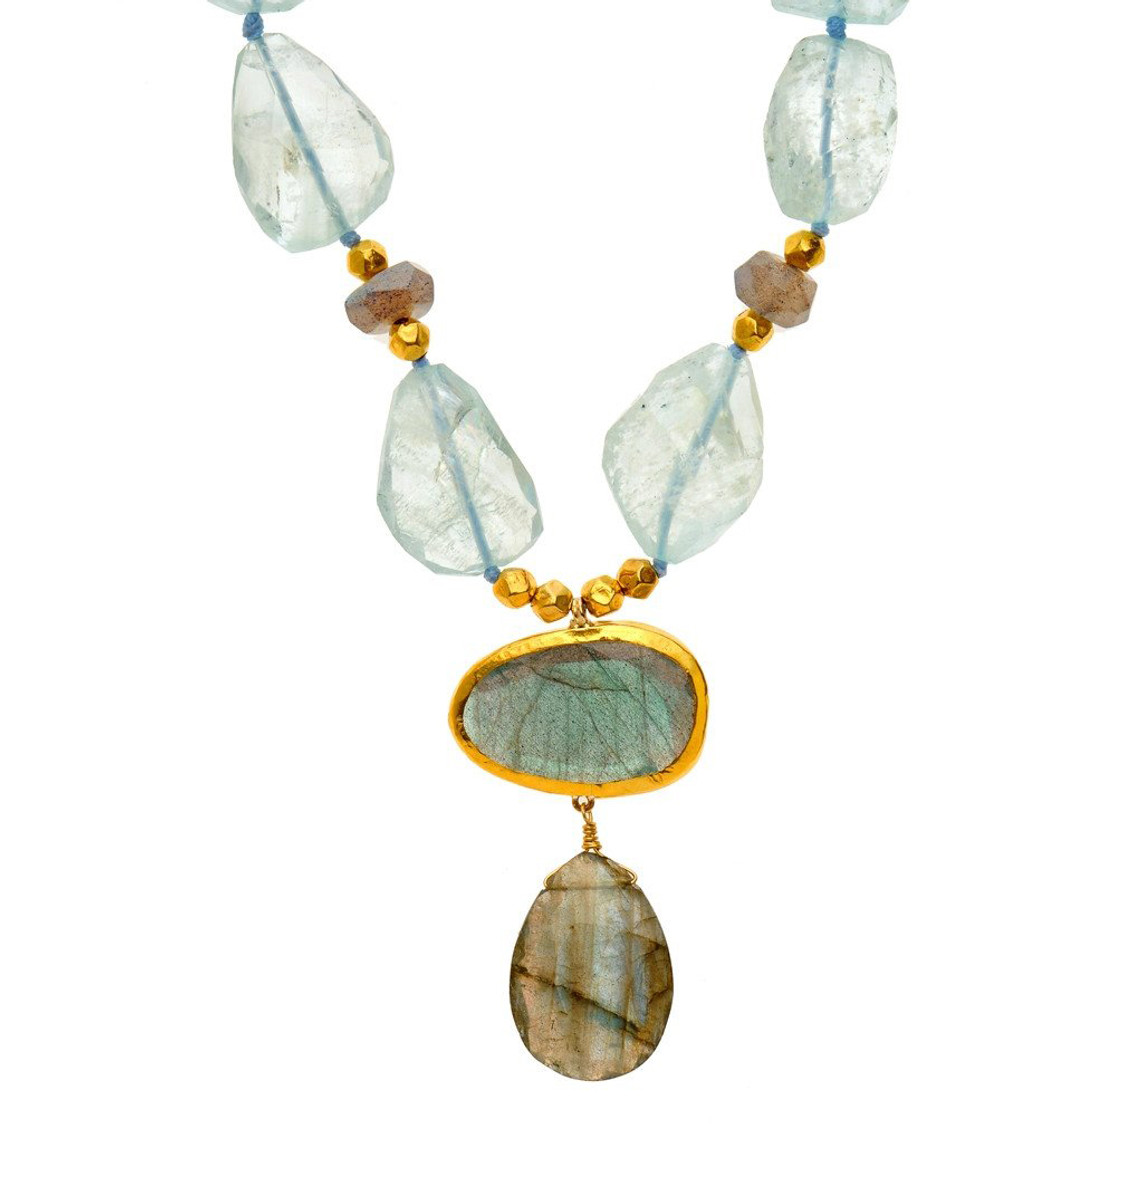 Aqua Nugget and Labradorite Necklace by Nava Zahavi - New Arrival